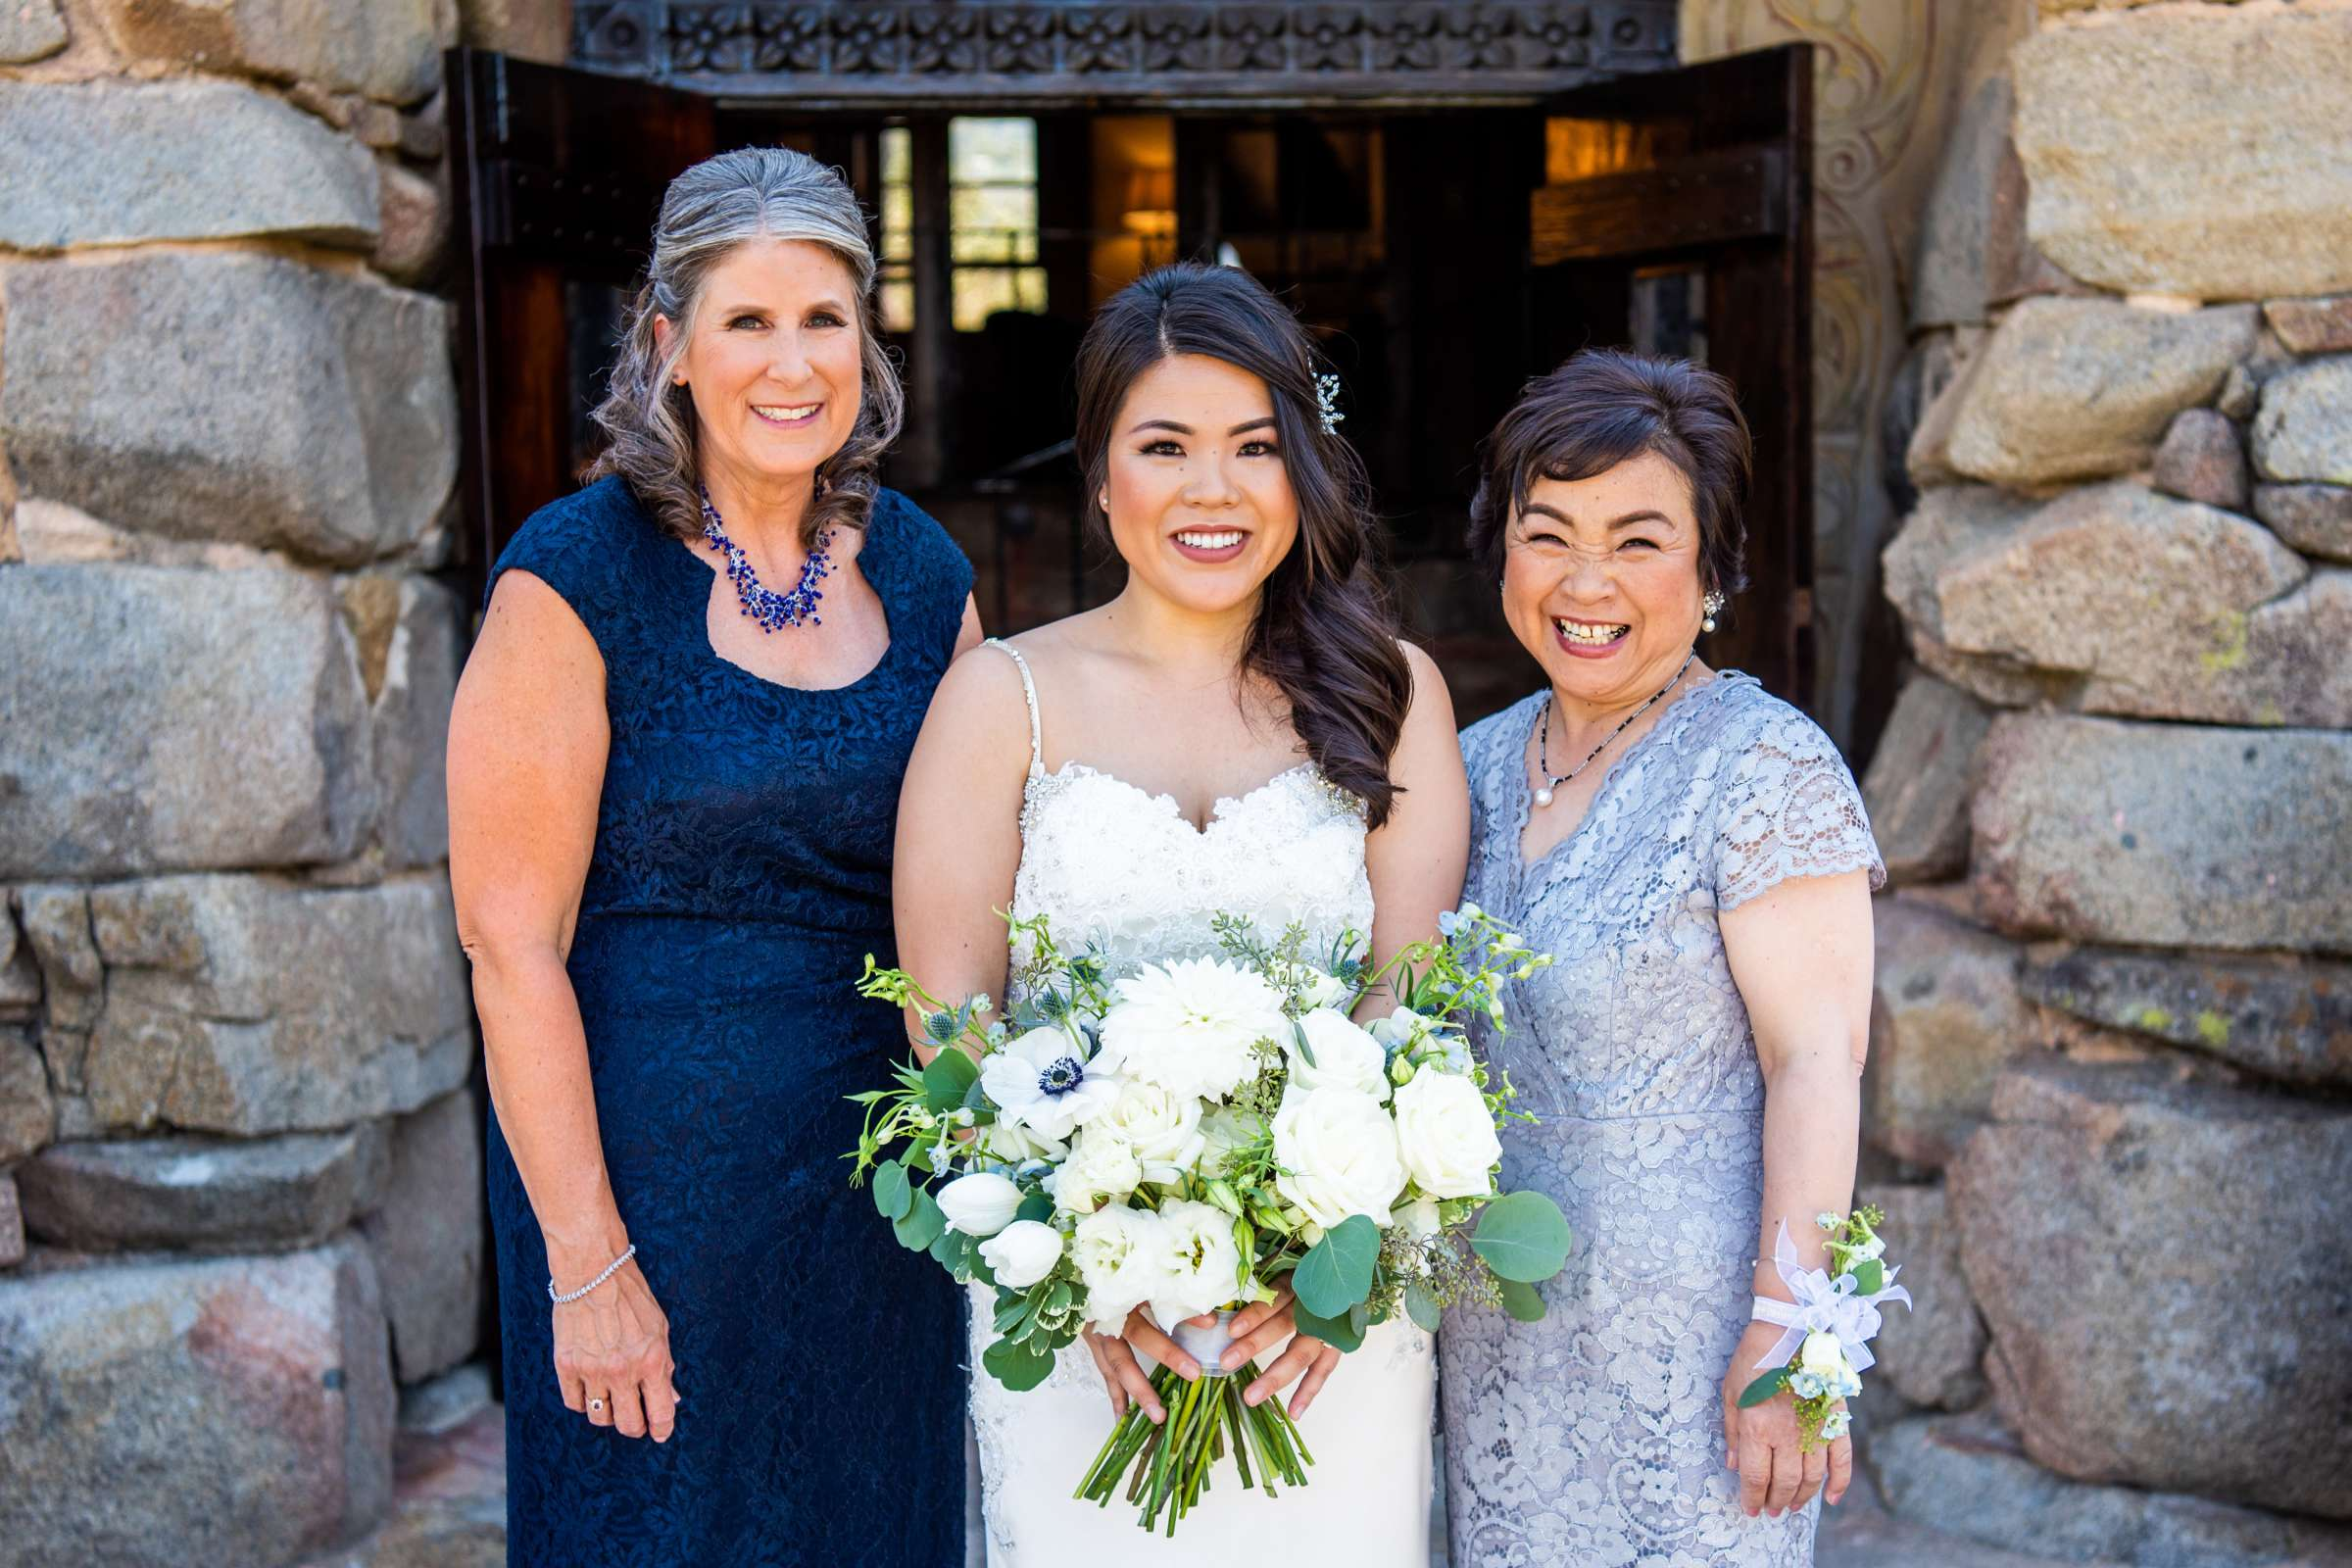 Mt Woodson Castle Wedding coordinated by I Do Weddings, Aya and Jared Wedding Photo #486906 by True Photography